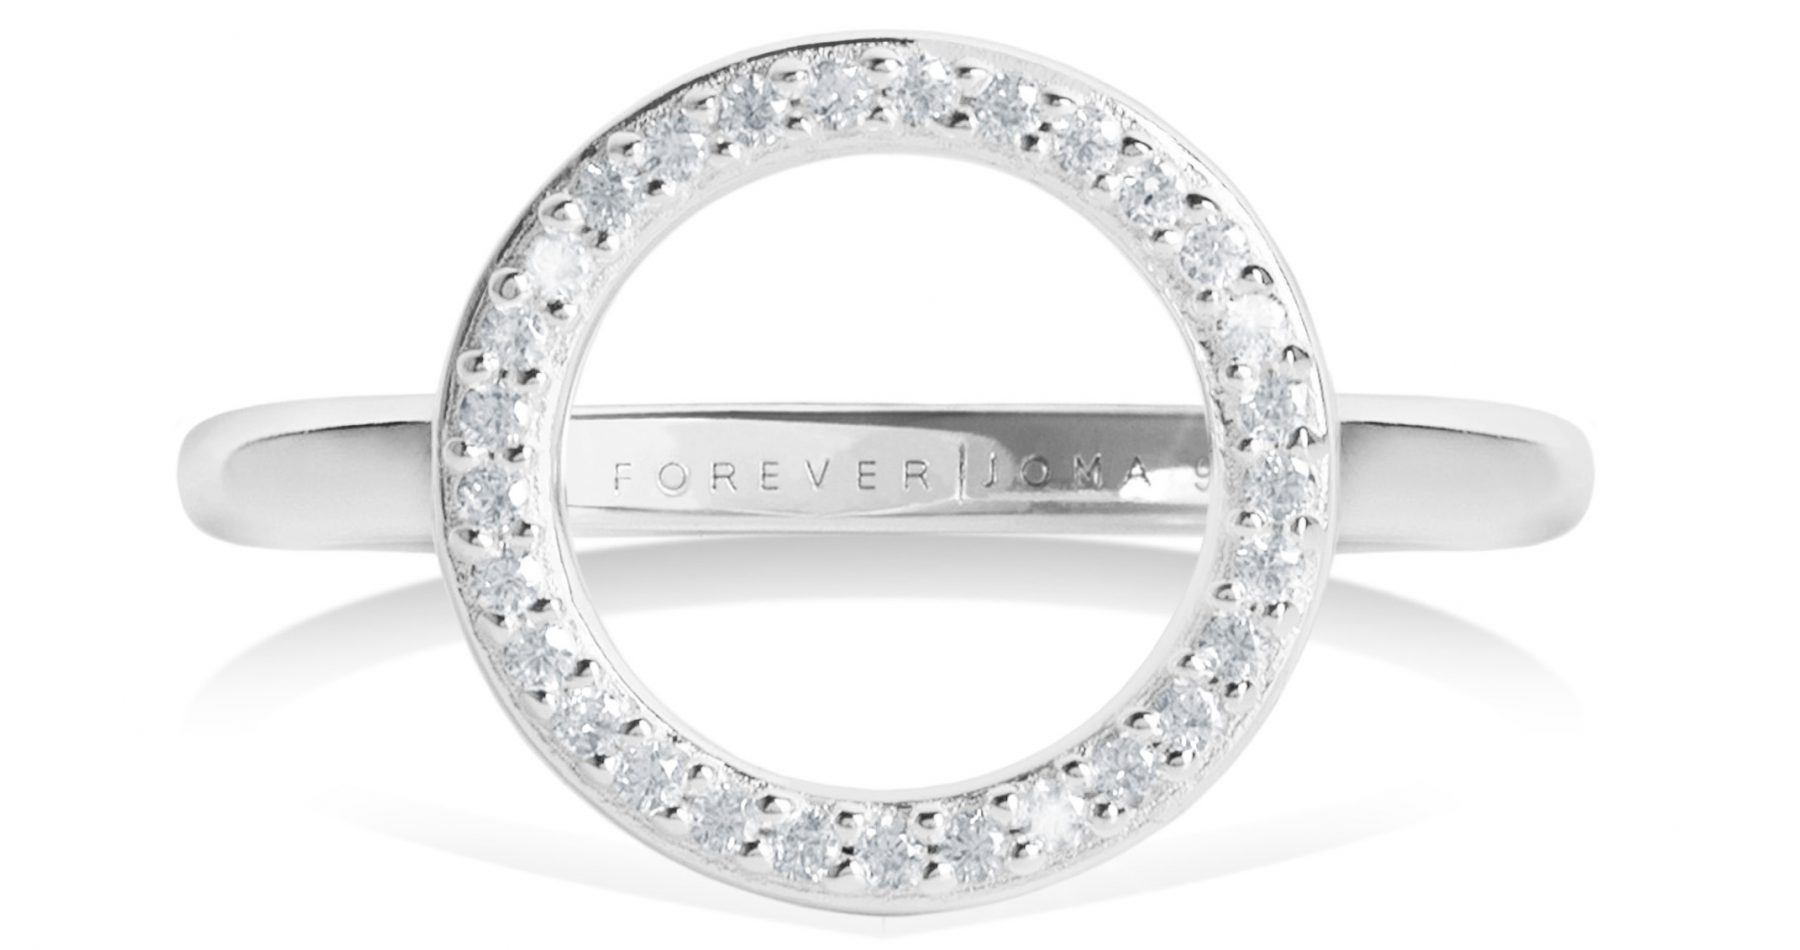 Forever Joma Jewellery - Staffordshire